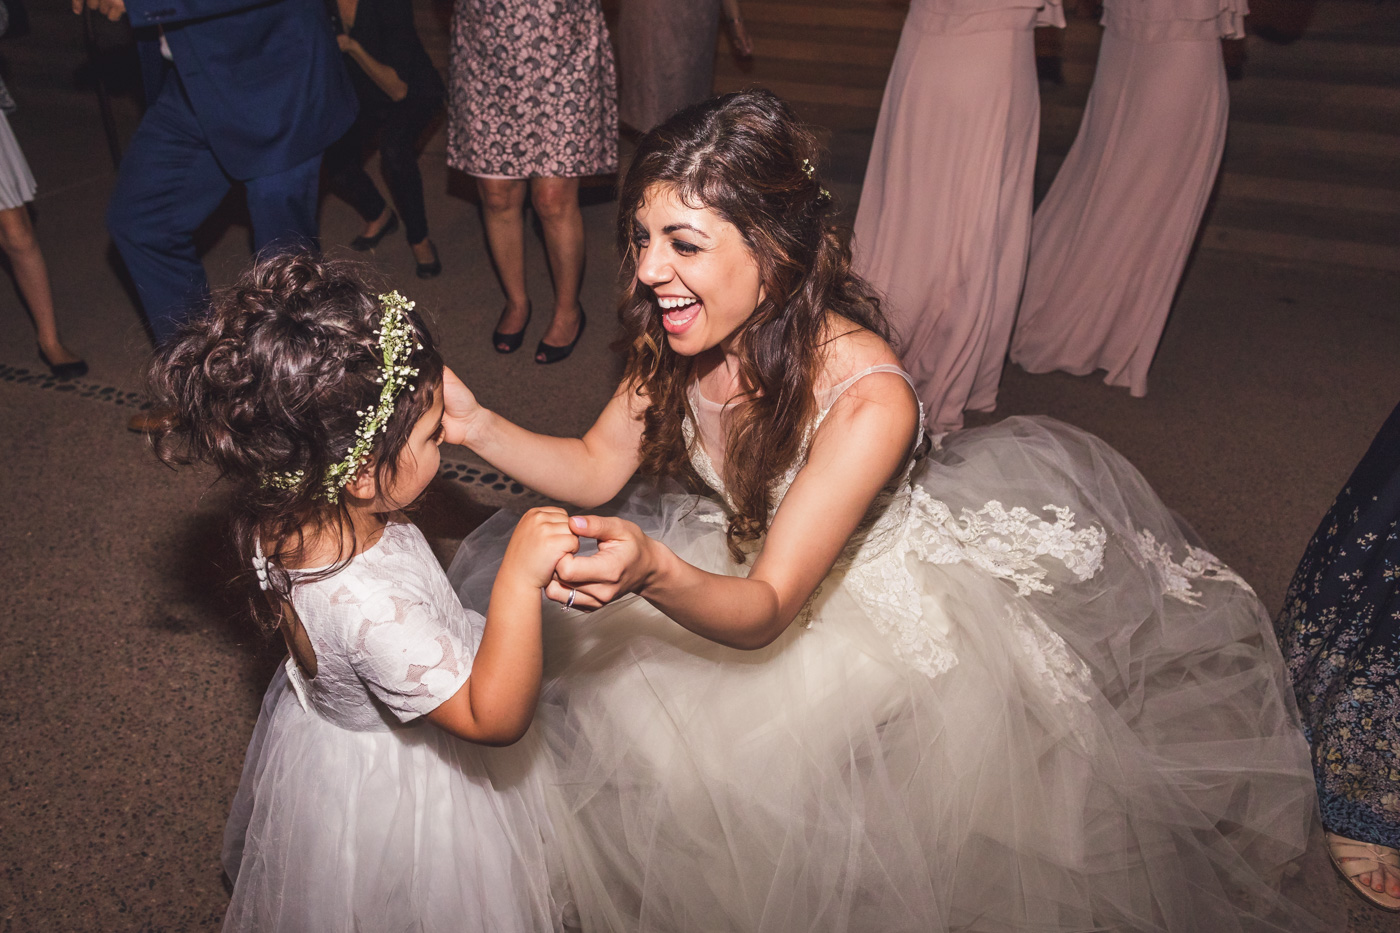 bride-having-fun-with-flower-girl